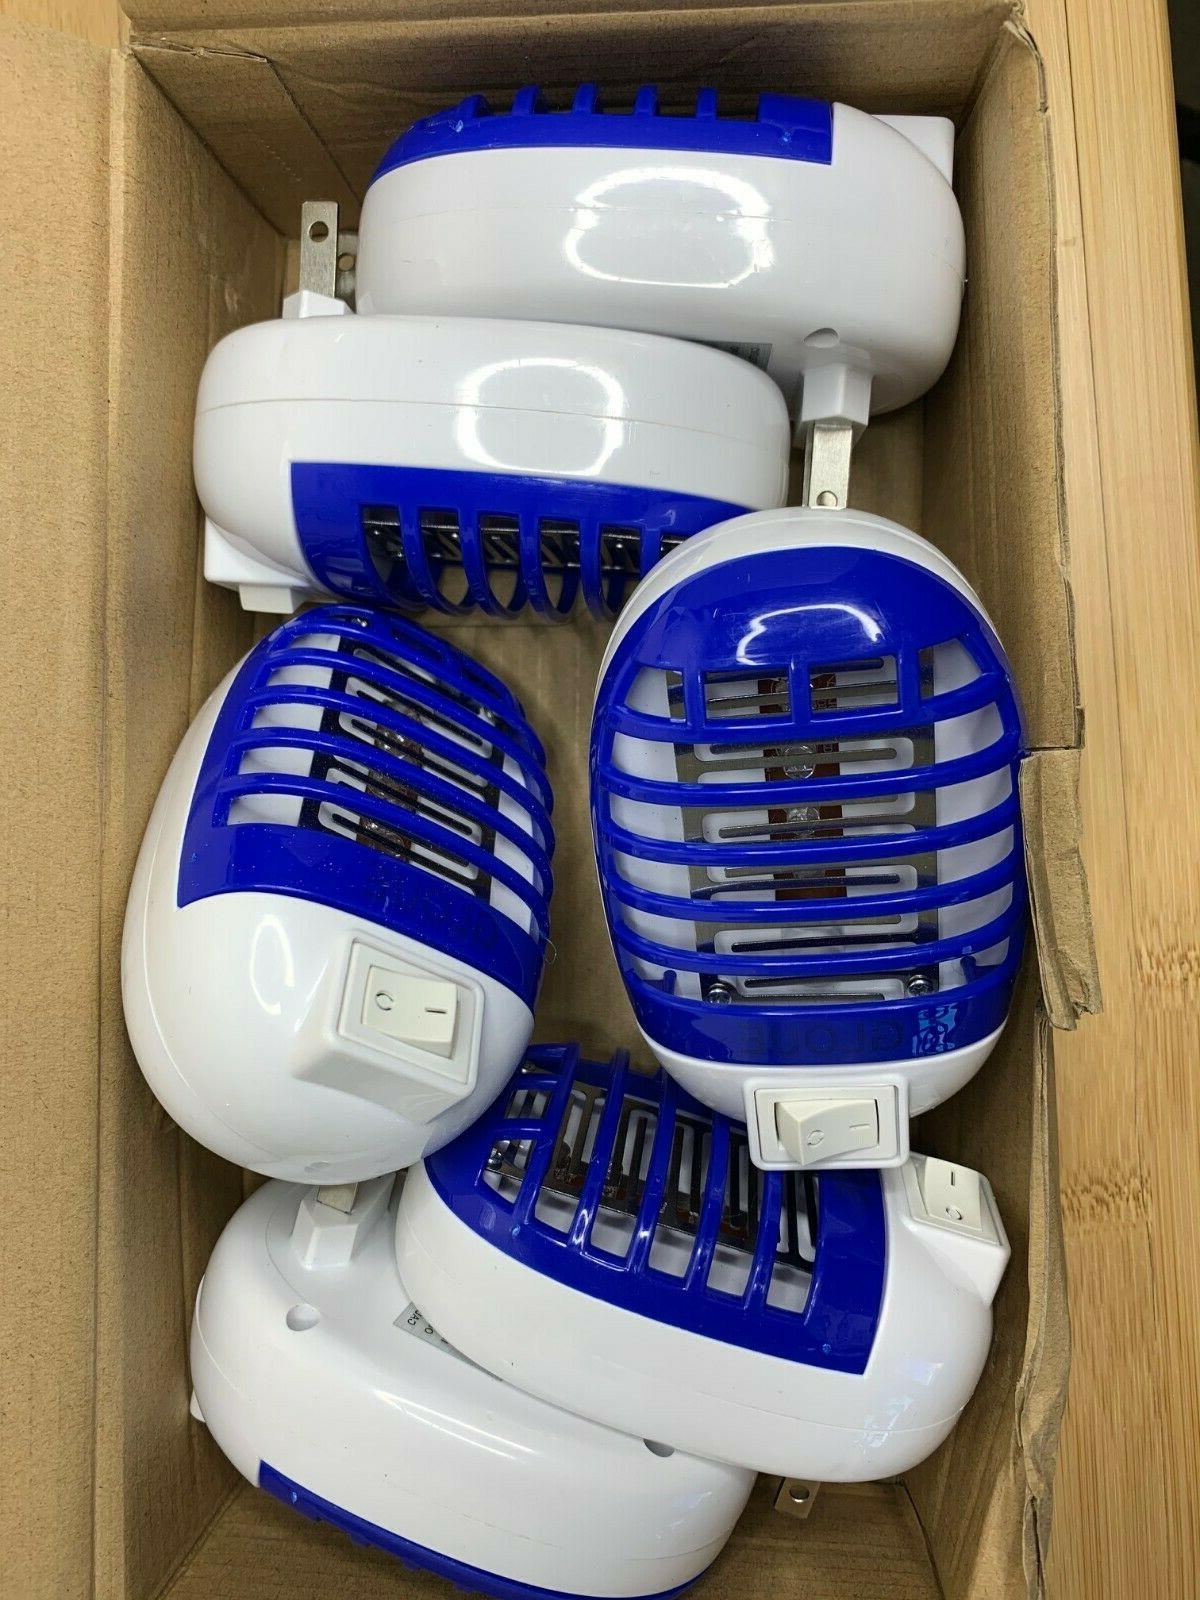 zapper electric bug zapper electronic insect killer